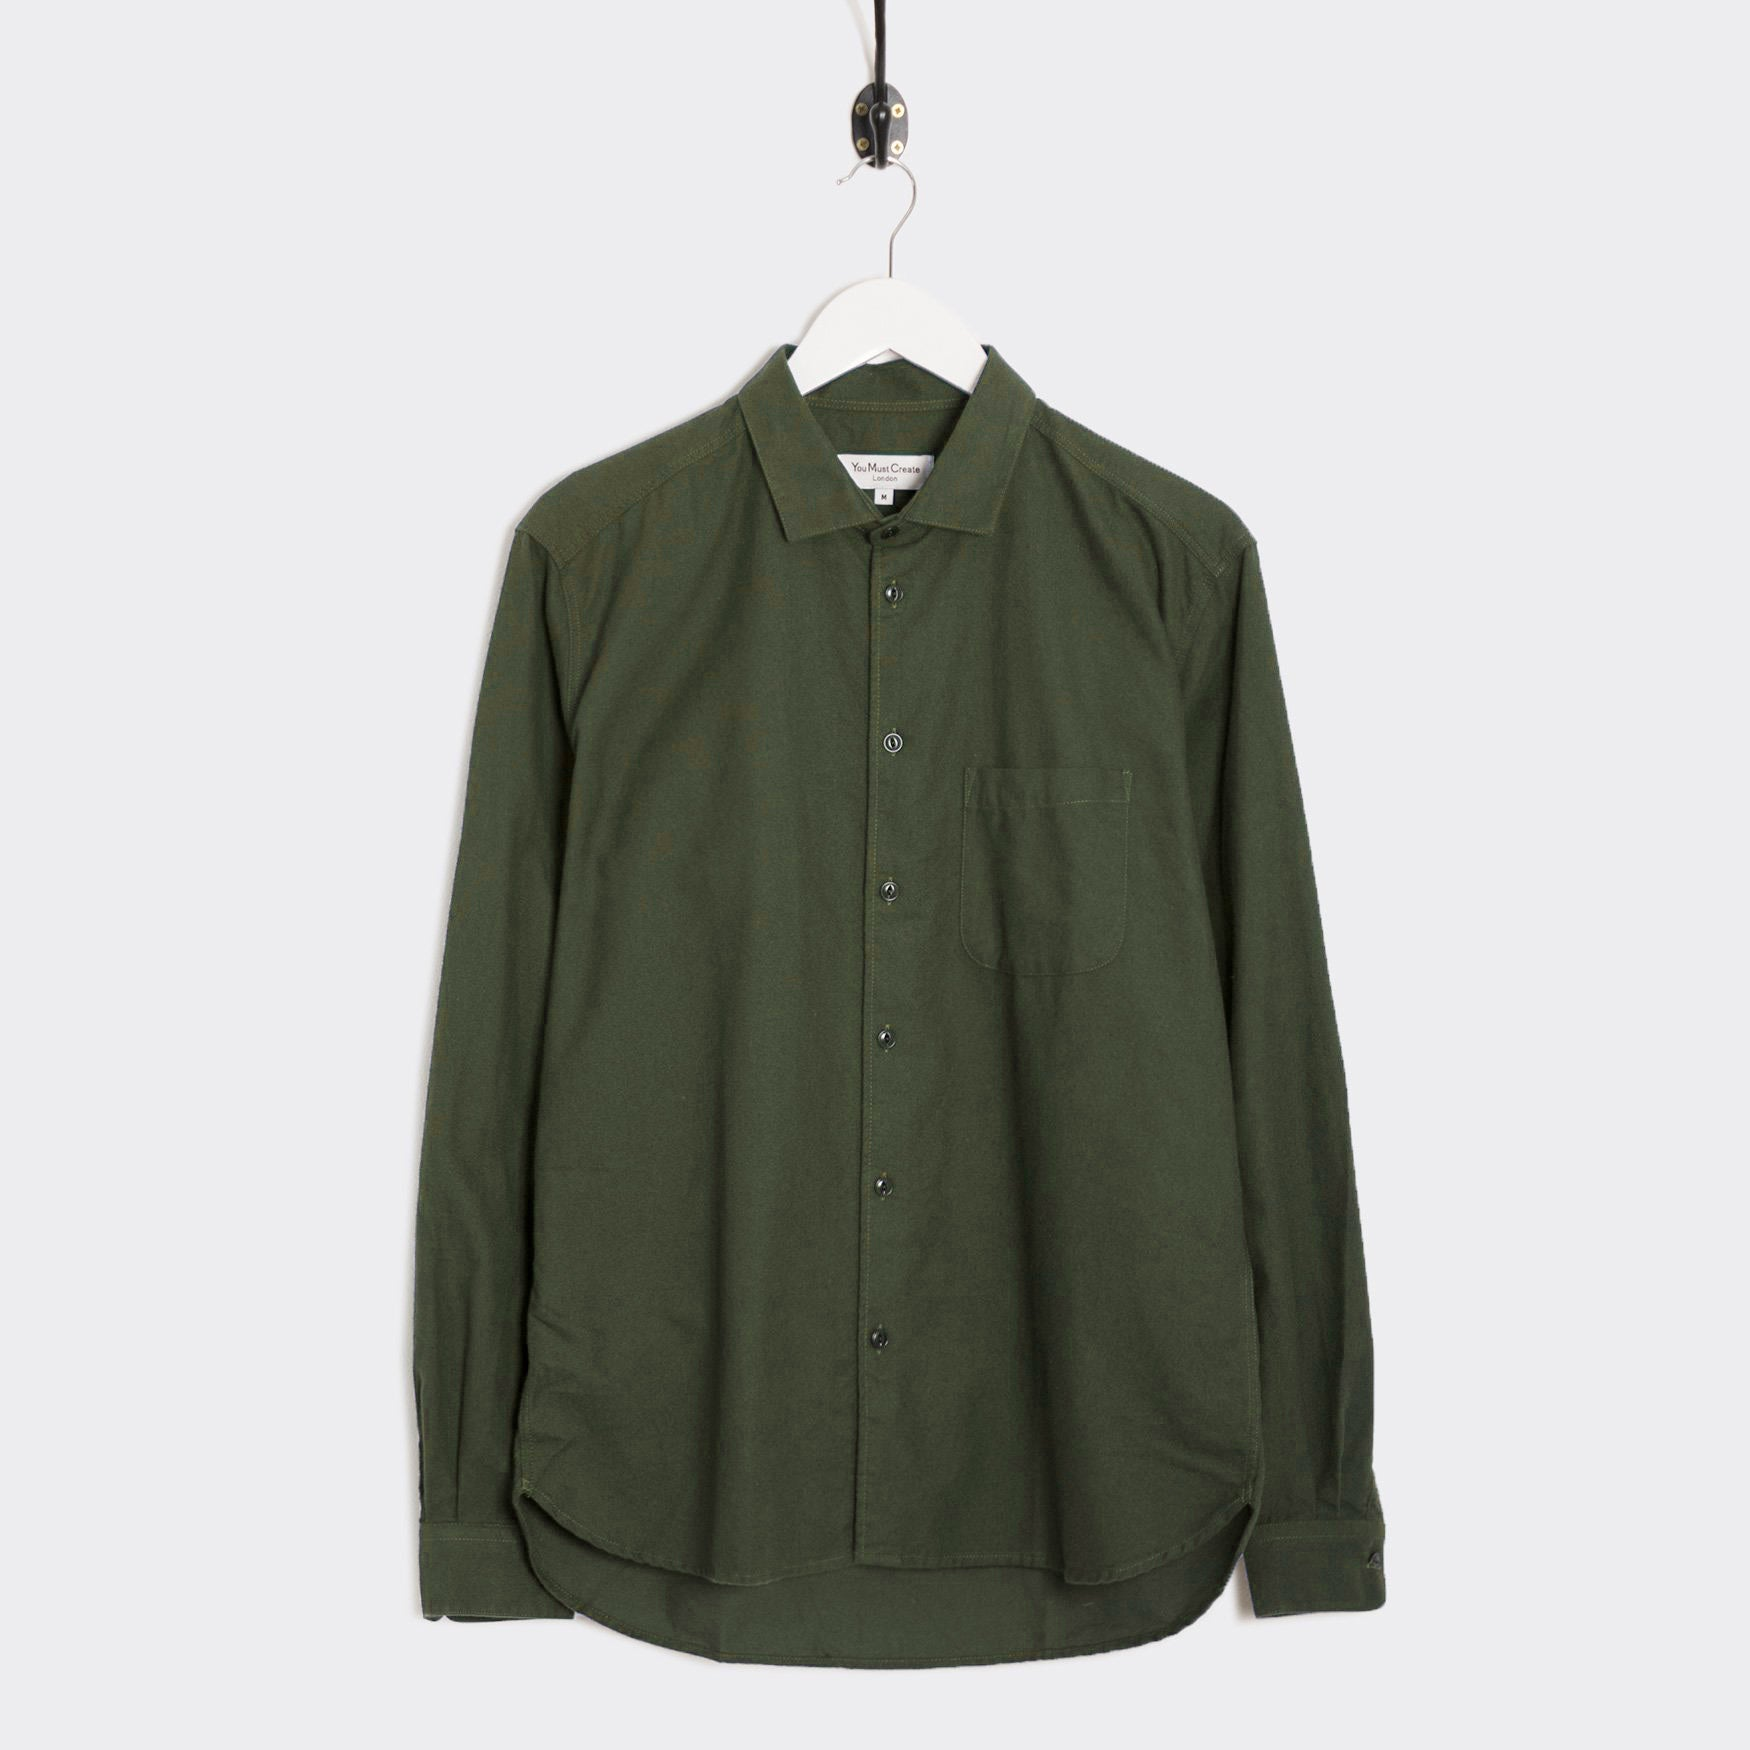 YMC Curtis Shirt - Olive Brushed Oxford Shirt - CARTOCON